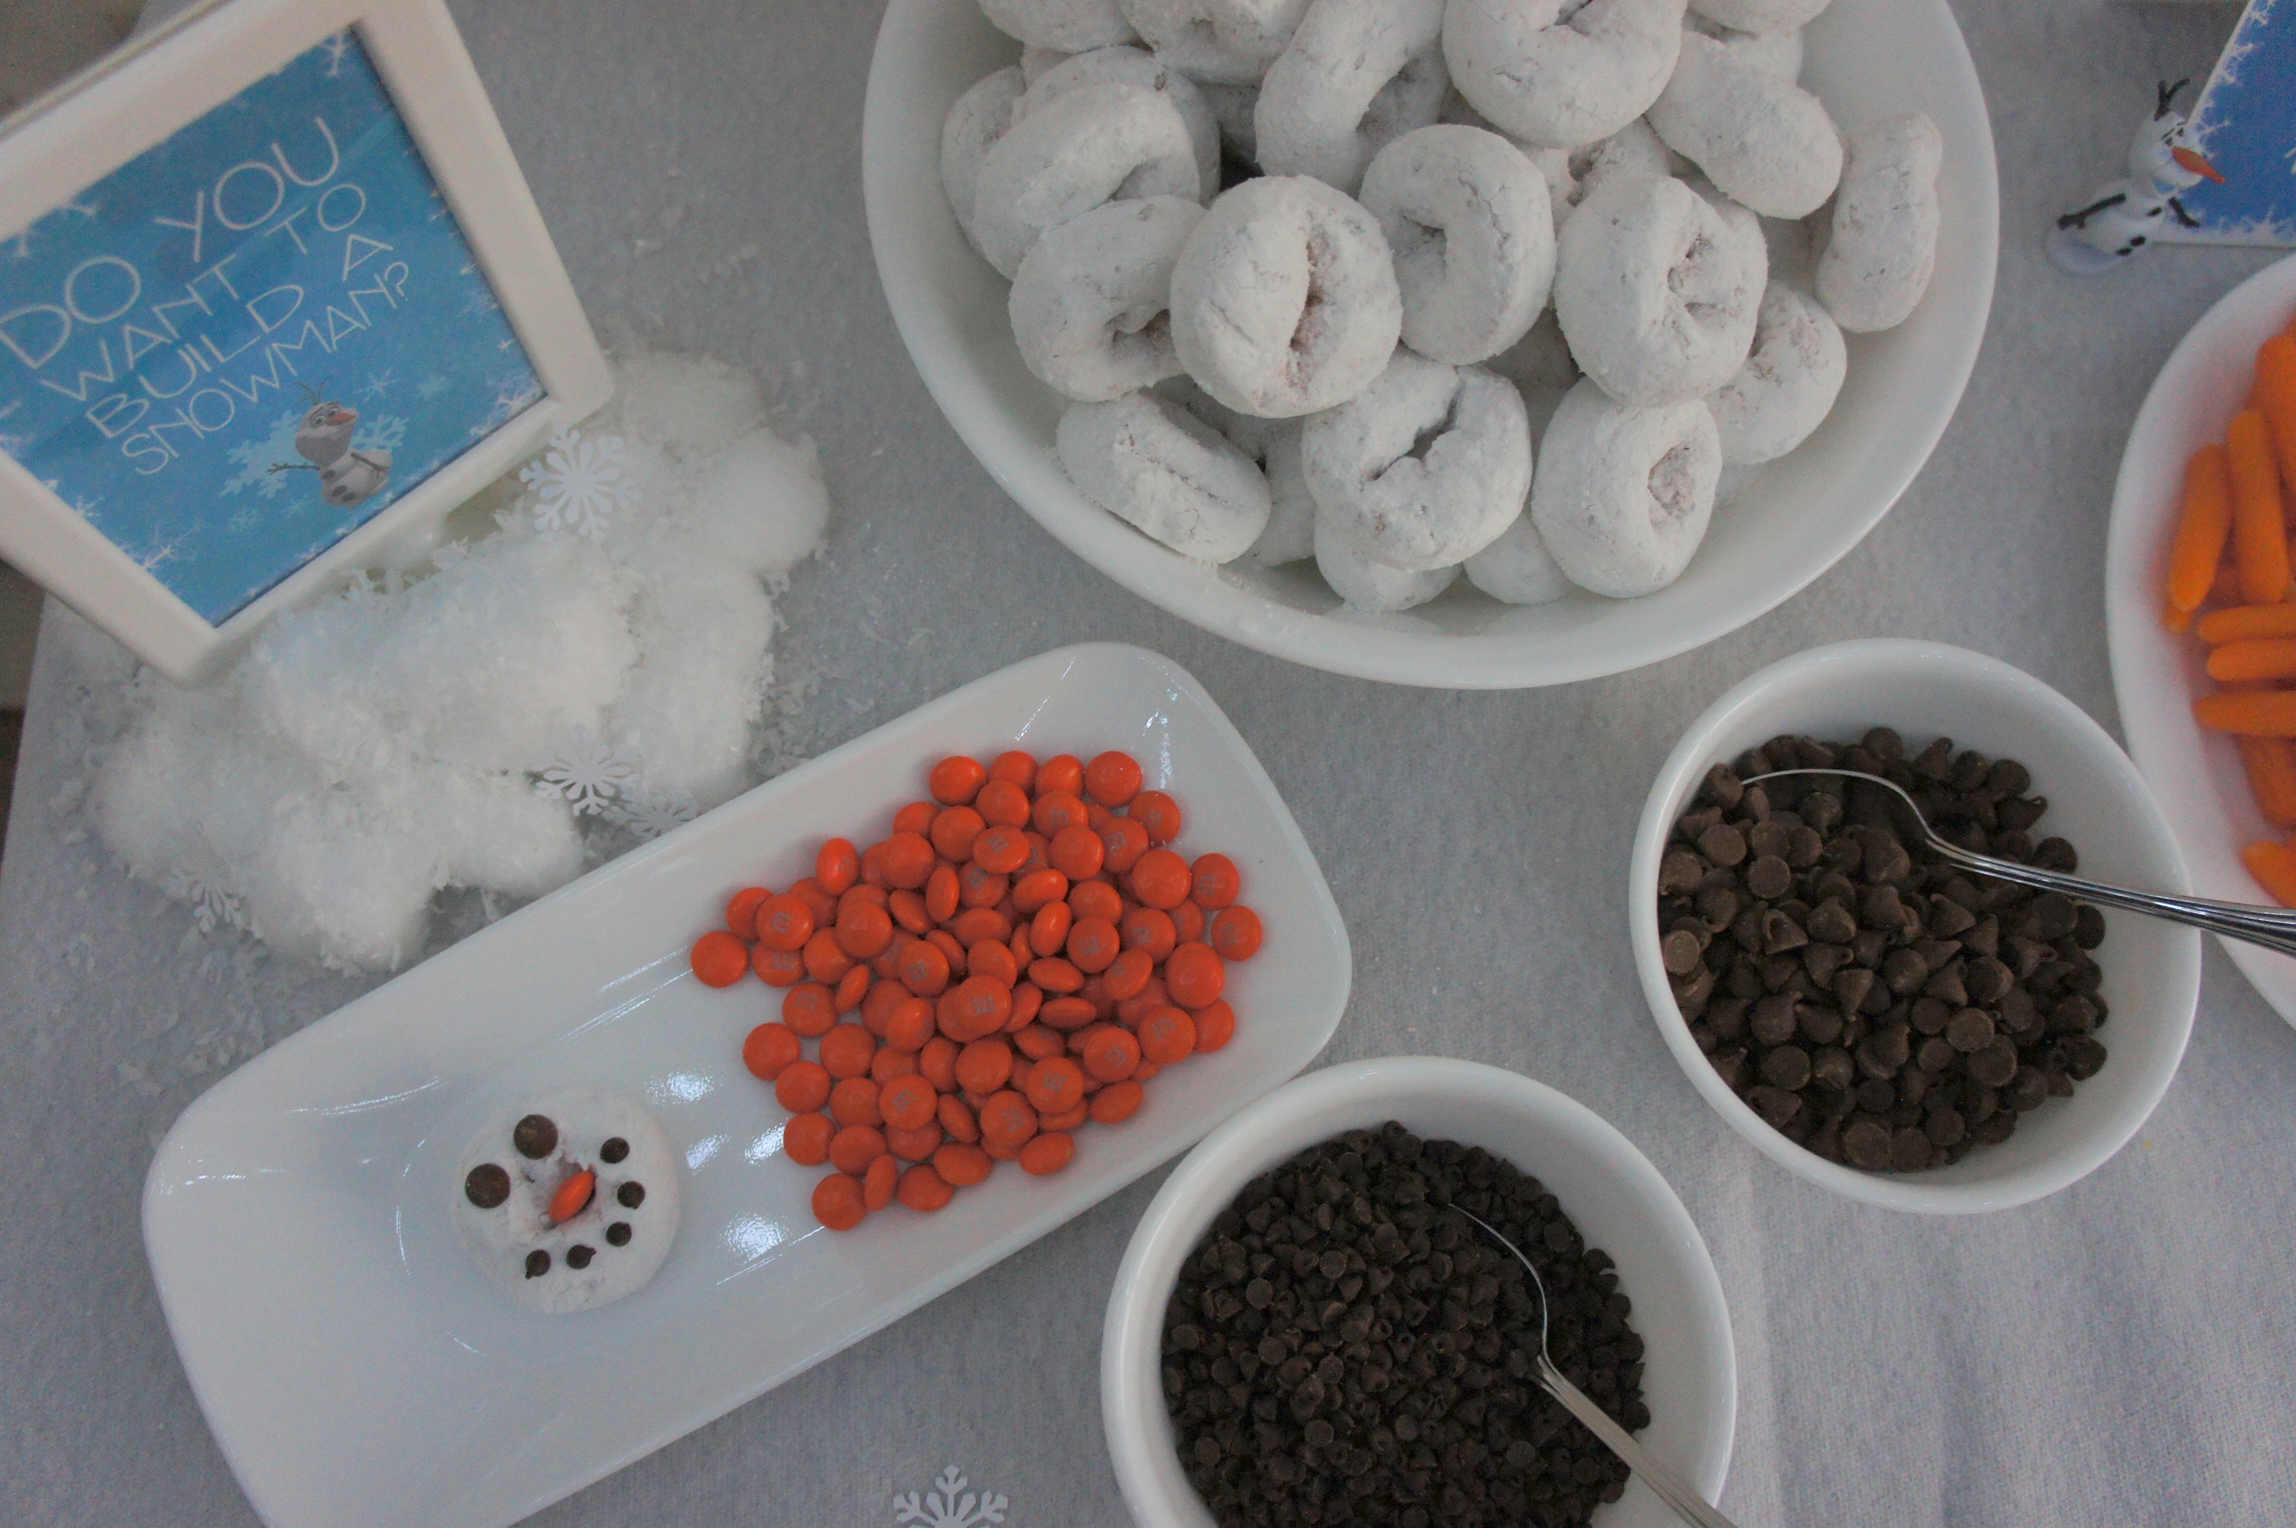 Frozen themed food - Do You Want To Build A Snowman?